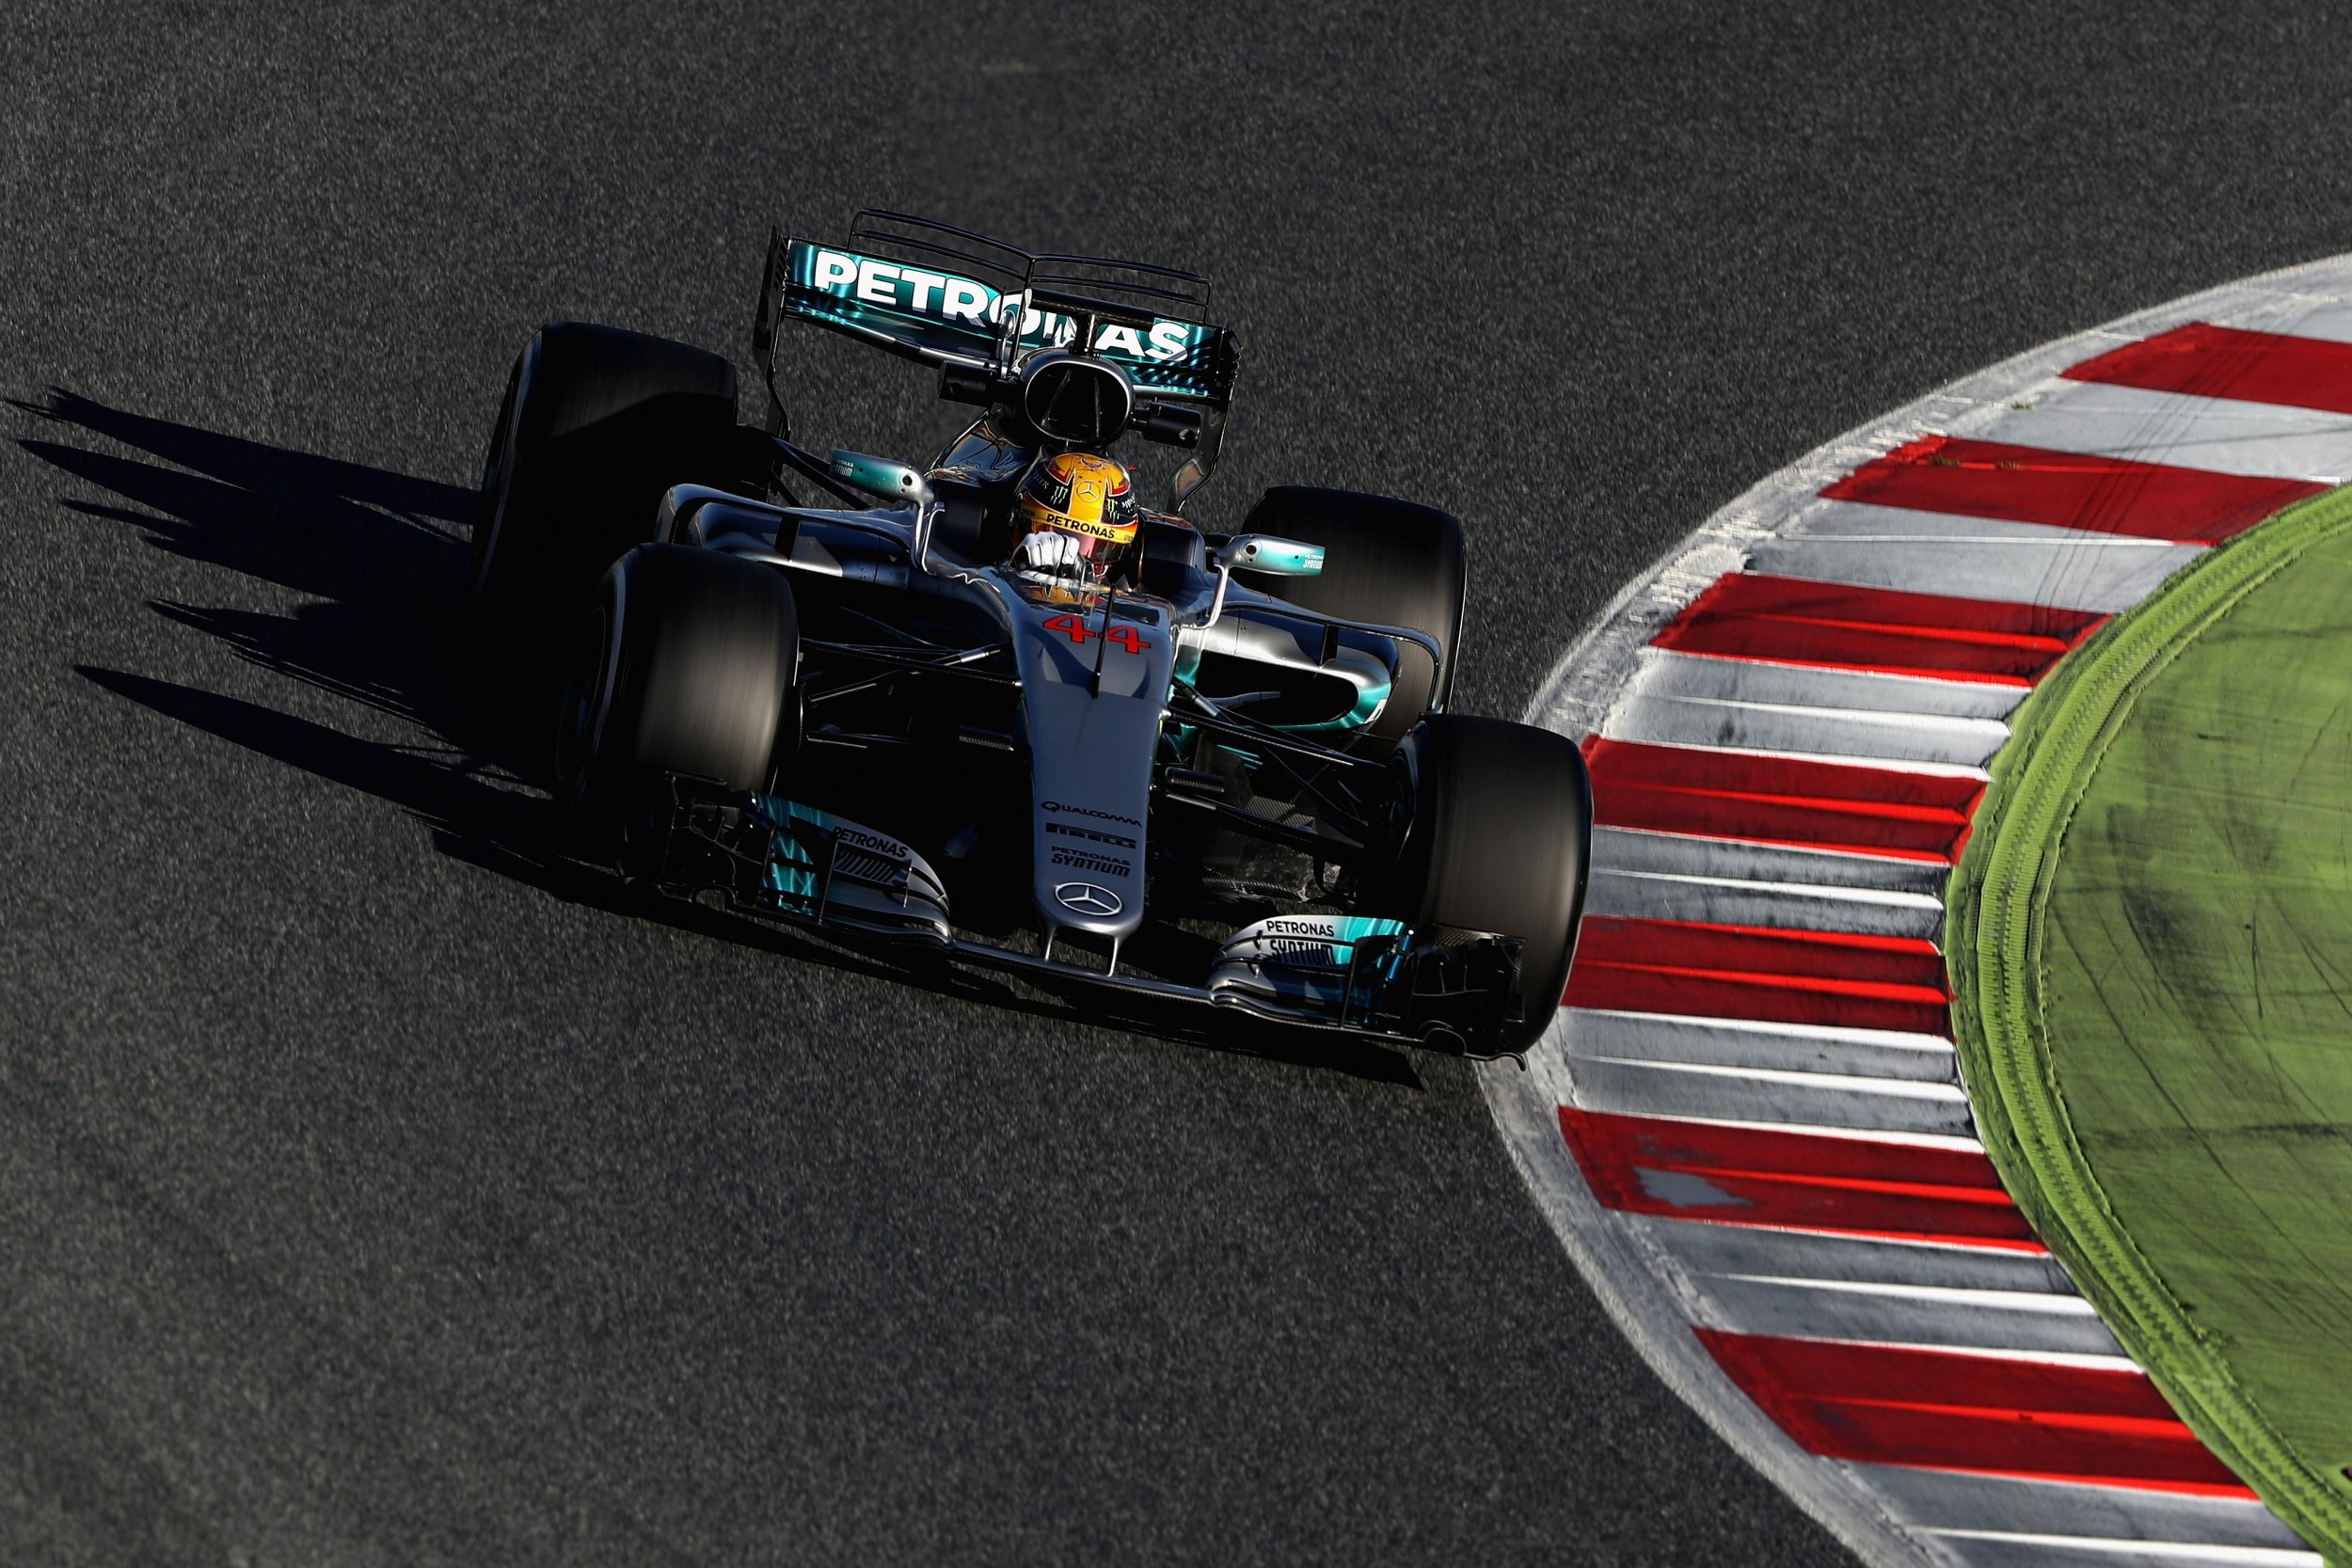 Lewis Hamilton of Mercedes at Circuit de Catalunya, Montmelo, Spain, March 1.